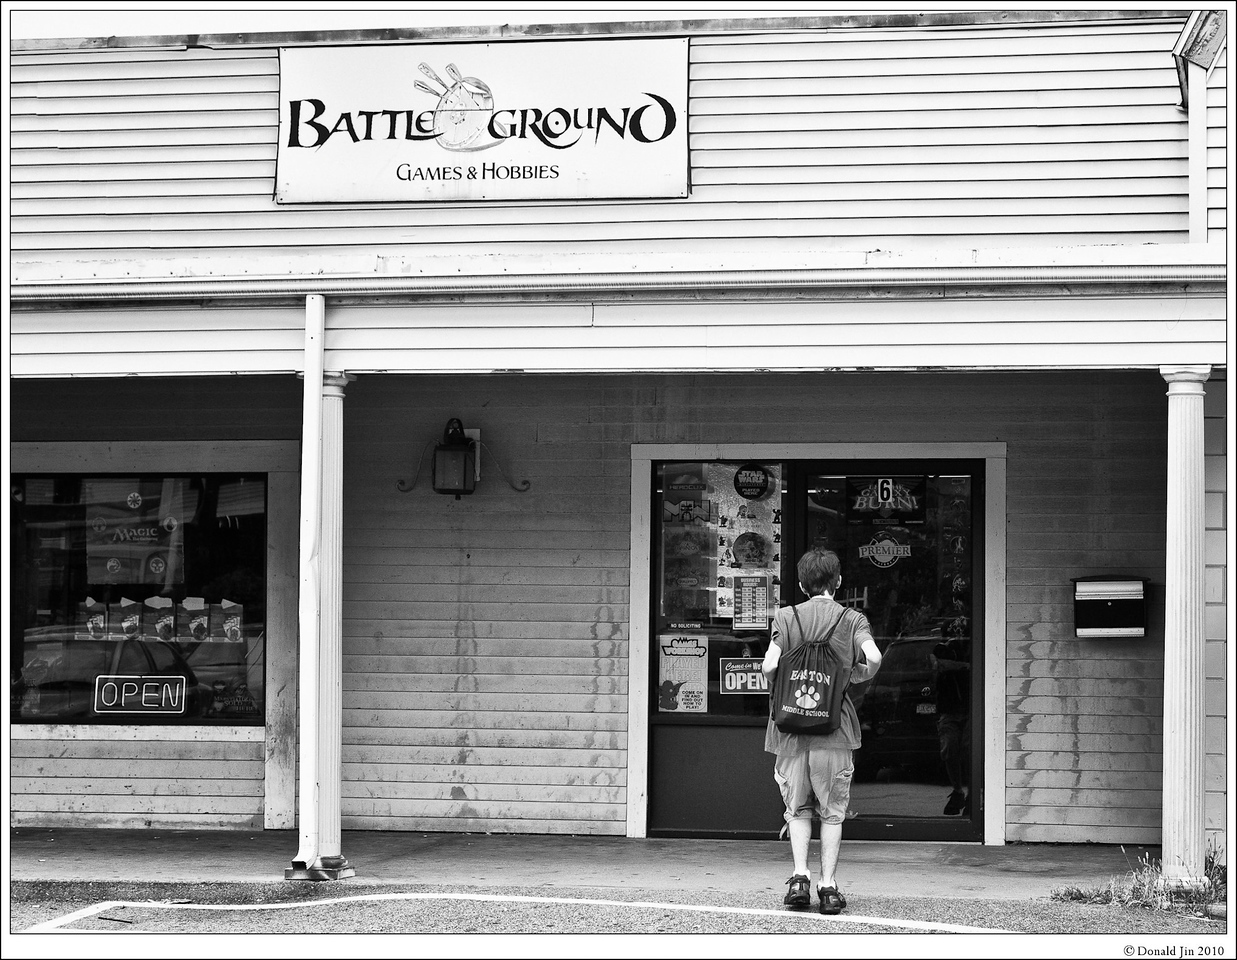 Day 53: There Can Only Be One<br /> Behind this unassuming storefront in a small New England suburban town, a battle of epic scale is planned for tonight.  Wizards are laying out their land to fuel their mana, lining up deadly creatures to summon and planning their most powerful spells to ultimately bring down their opponents.  At the end of the night, only one wizard will remain standing.  This is the place where magic happens – that's Magic: The Gathering.  Today, after Sunday service, Alex had only one thing on his mind - the MTG tournament.  He was rushed over to this little store where grown men and teenage boys alike gathered to show off their collection of Magic card decks and battle it out for the ultimate bragging right.